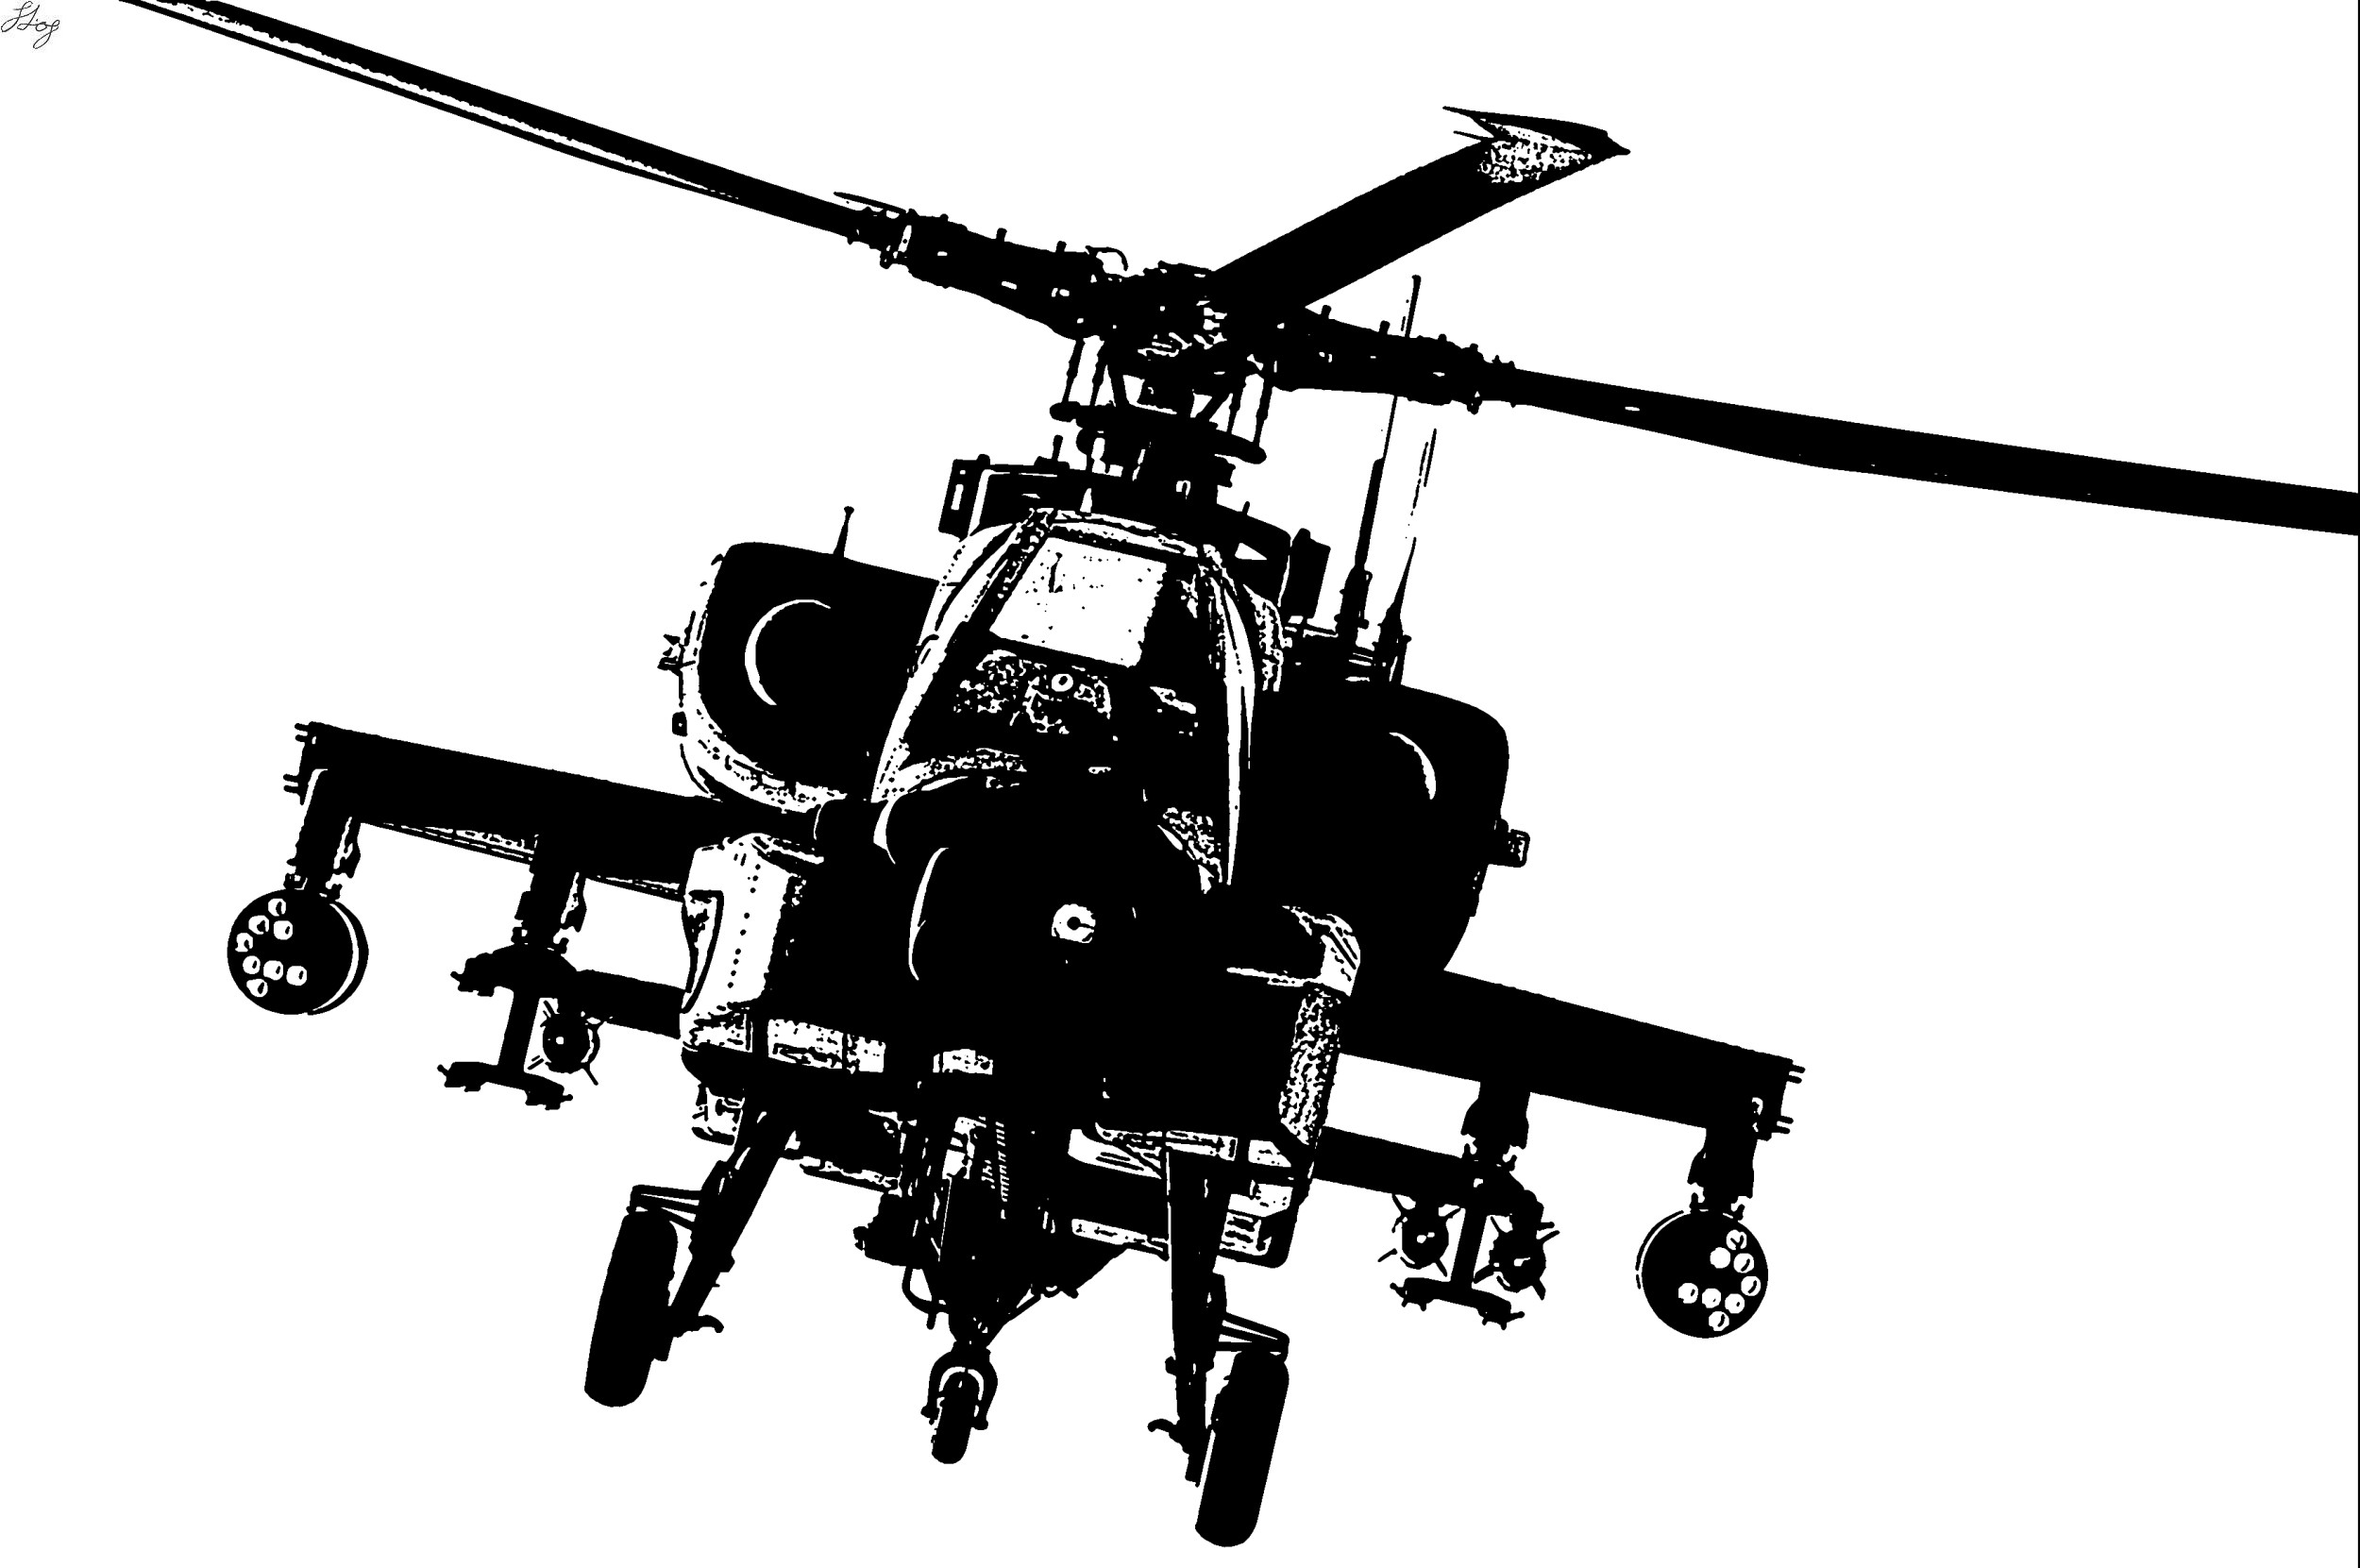 Apache attack helicopter by random.